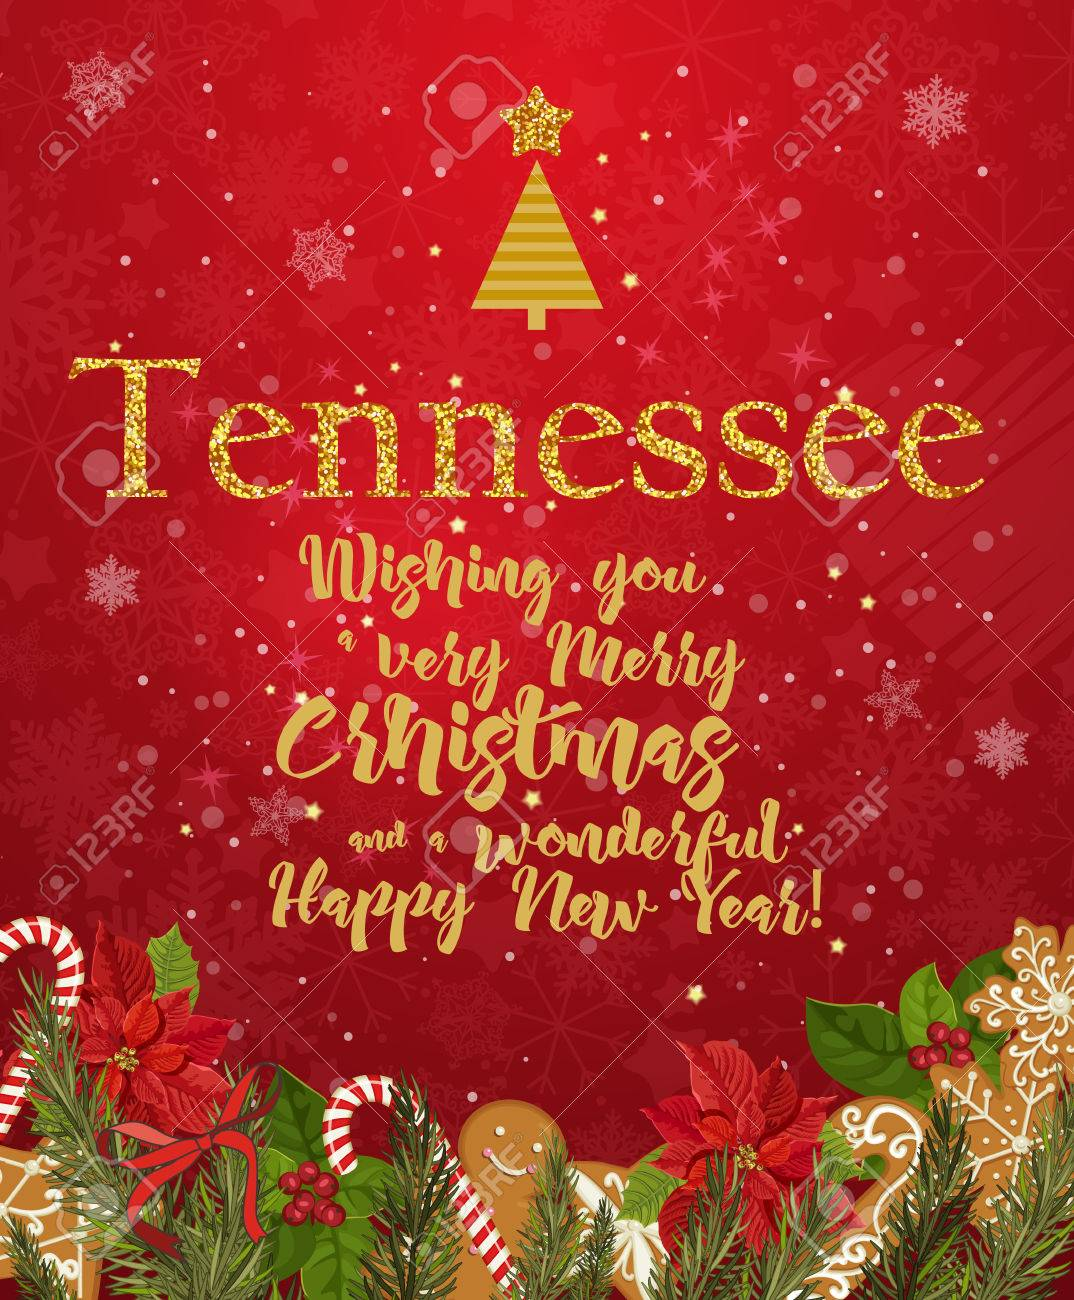 Christmas In Tennessee.Tennessee Merry Christmas And A Happy New Year Greeting Vector